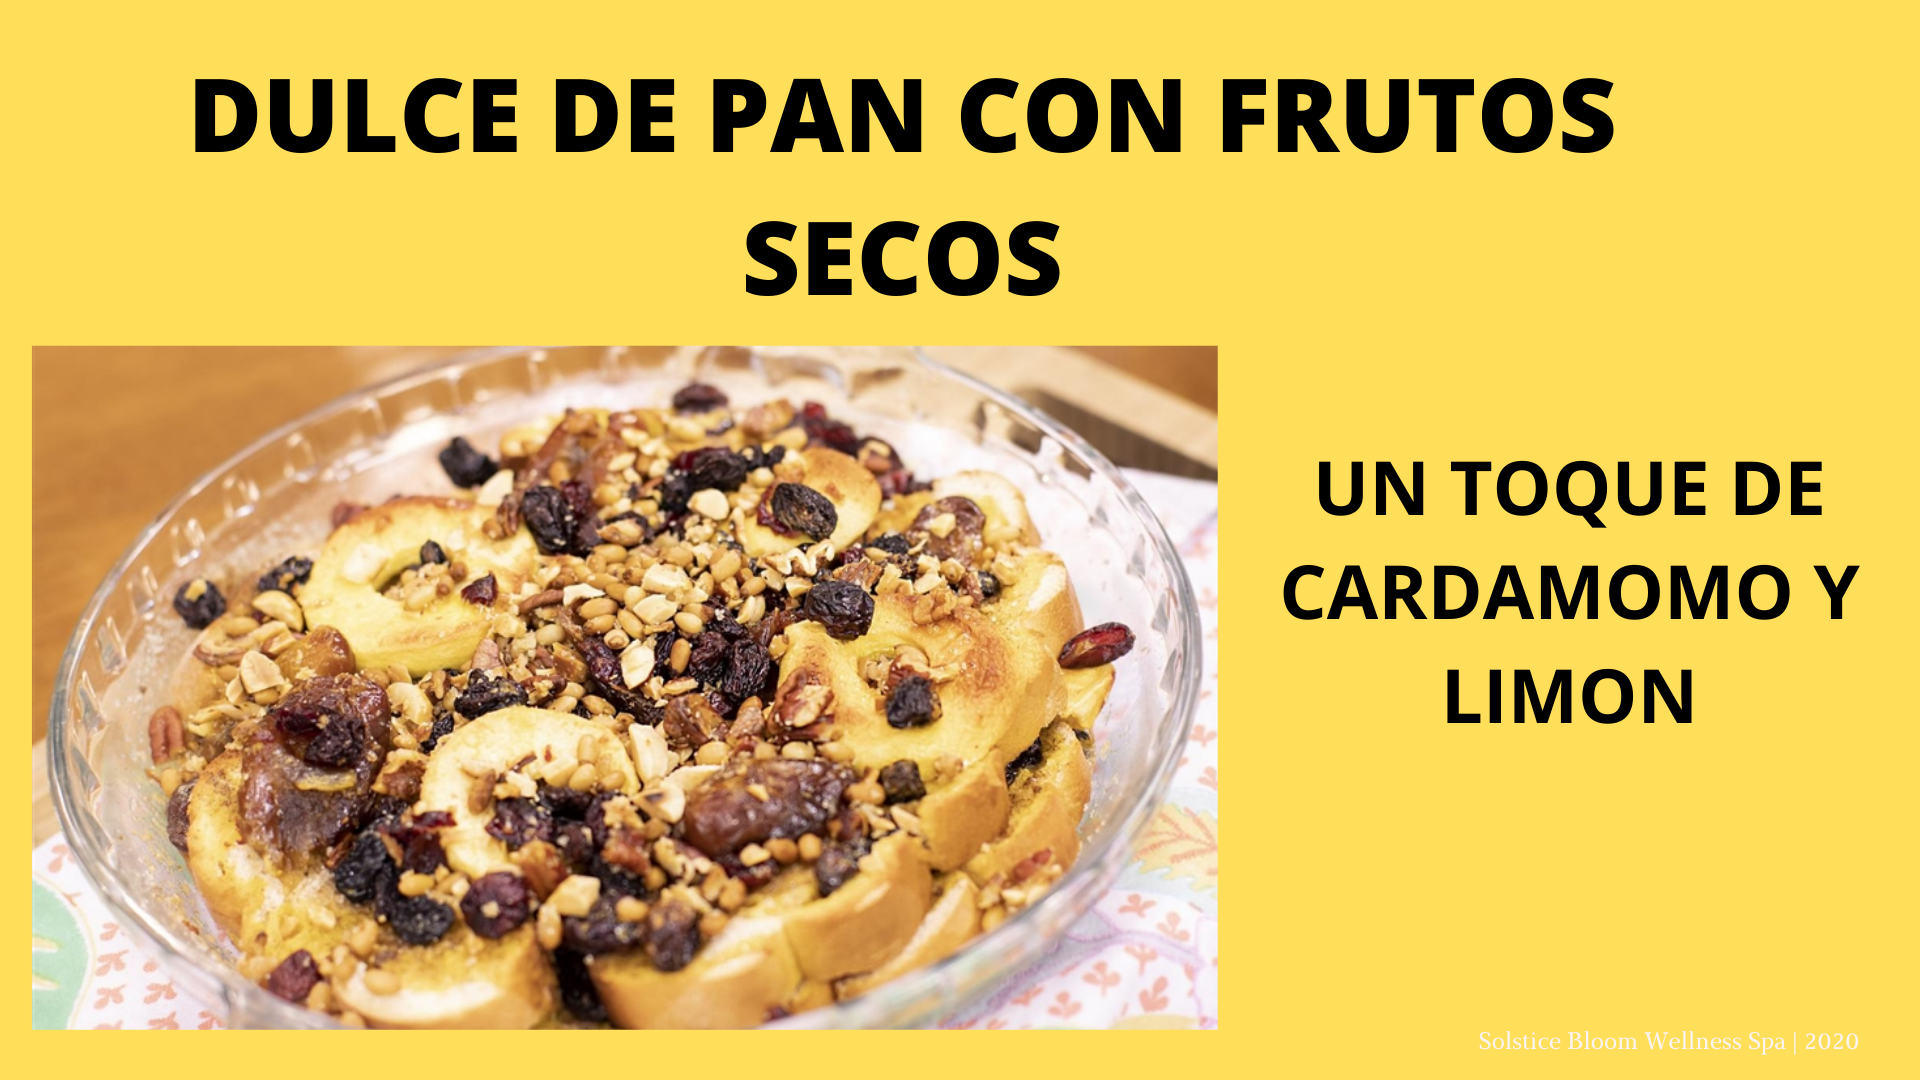 DULCE DE PAN CON FRUTOS SECOS